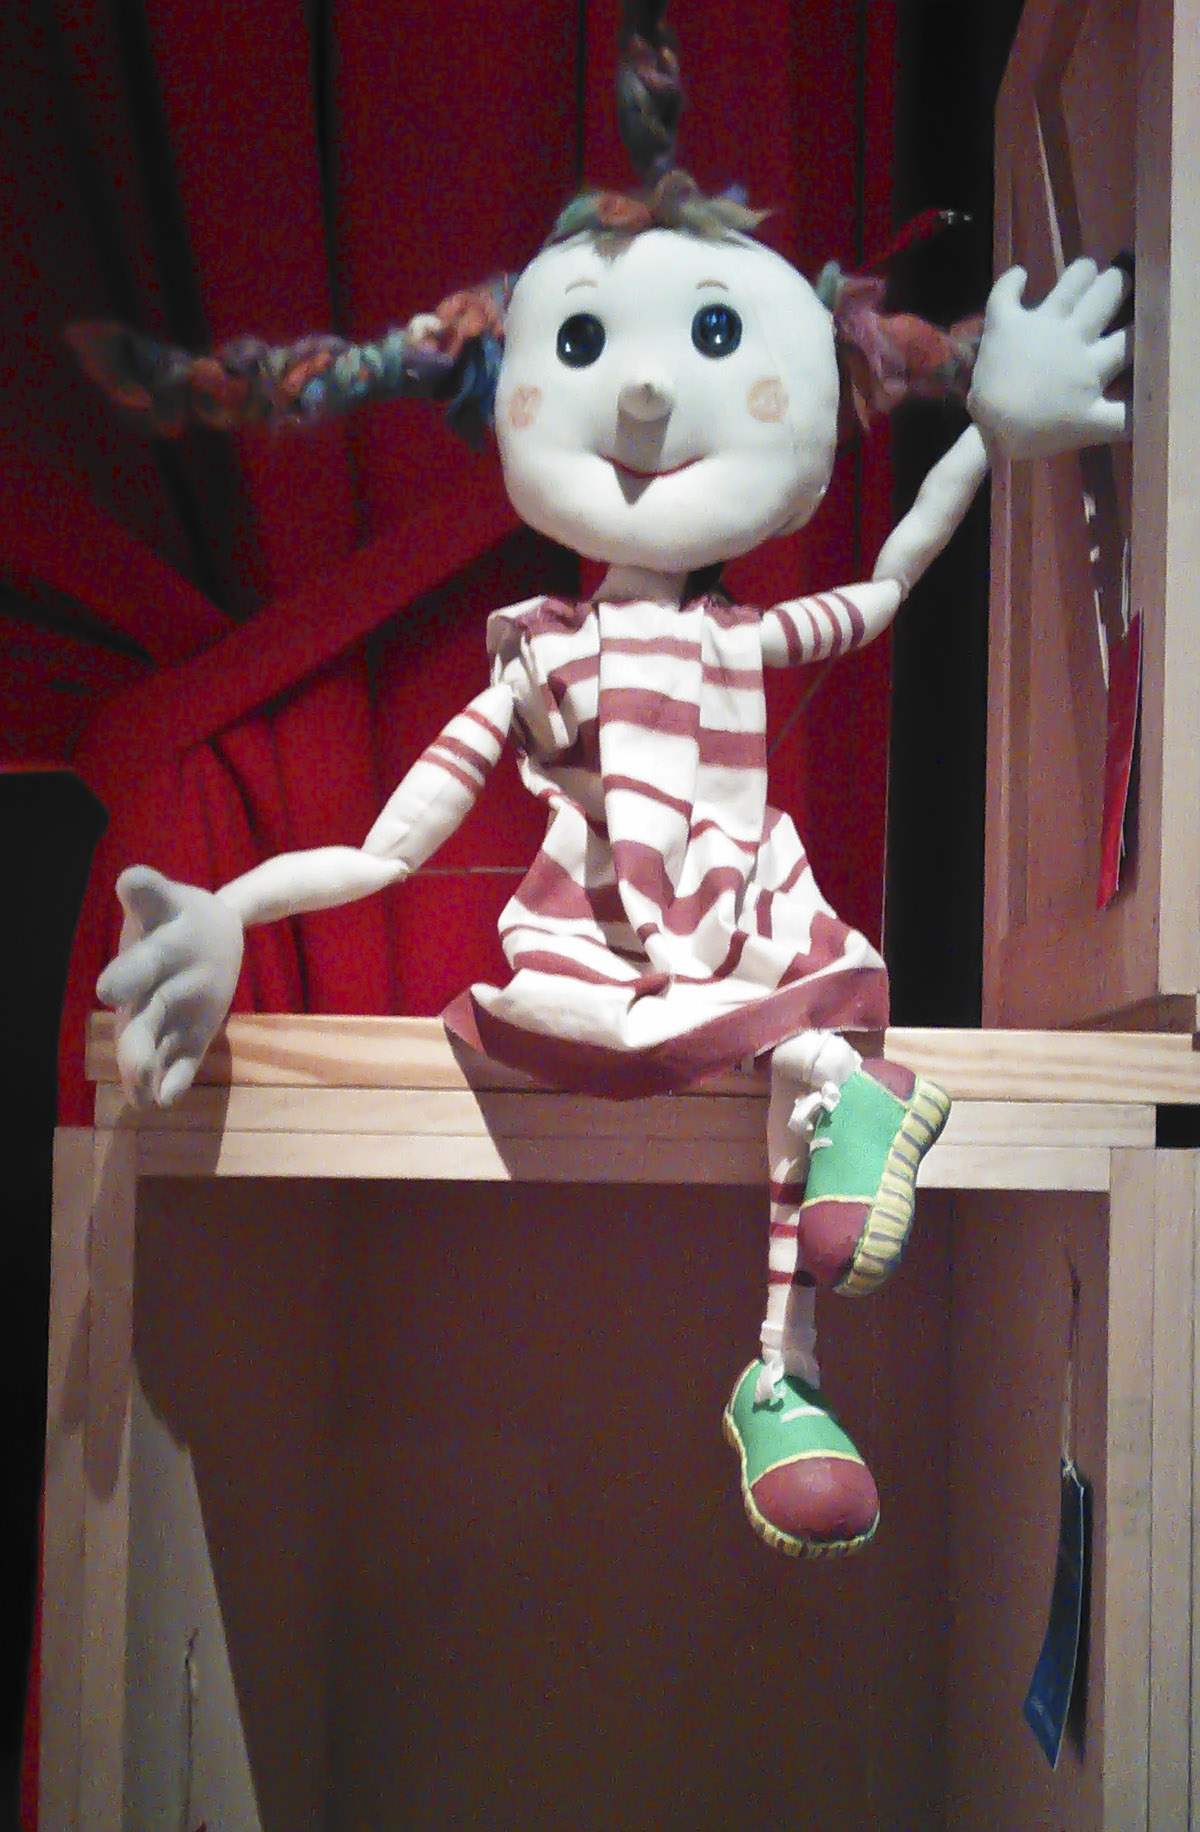 The mascot puppet at TOPIC.